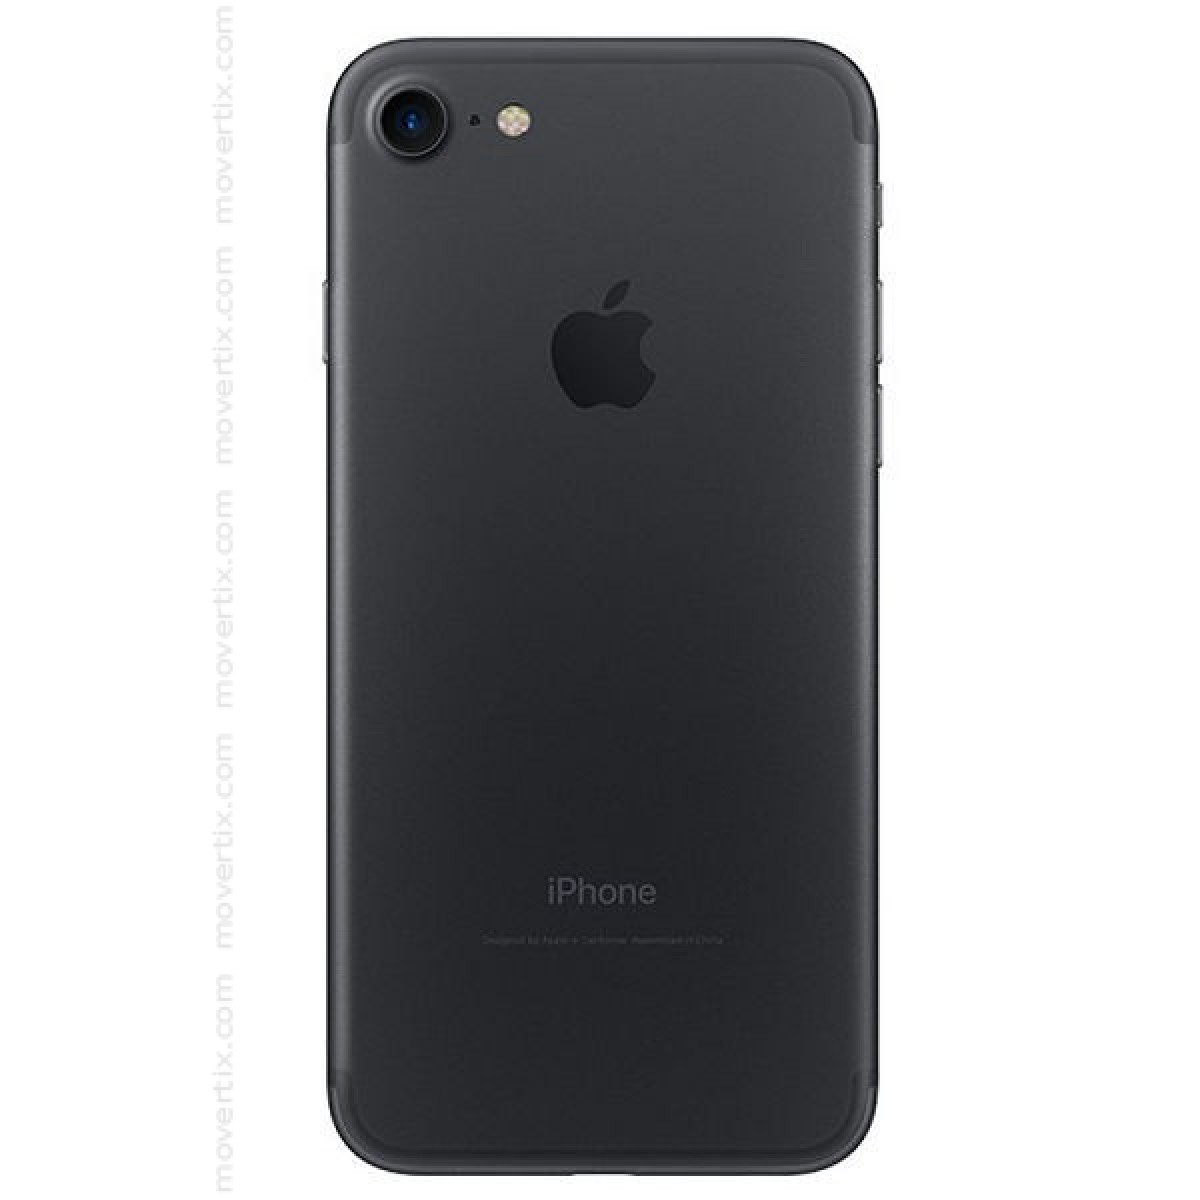 iphone 7 black 32gb 190198067098 movertix mobile phones shop